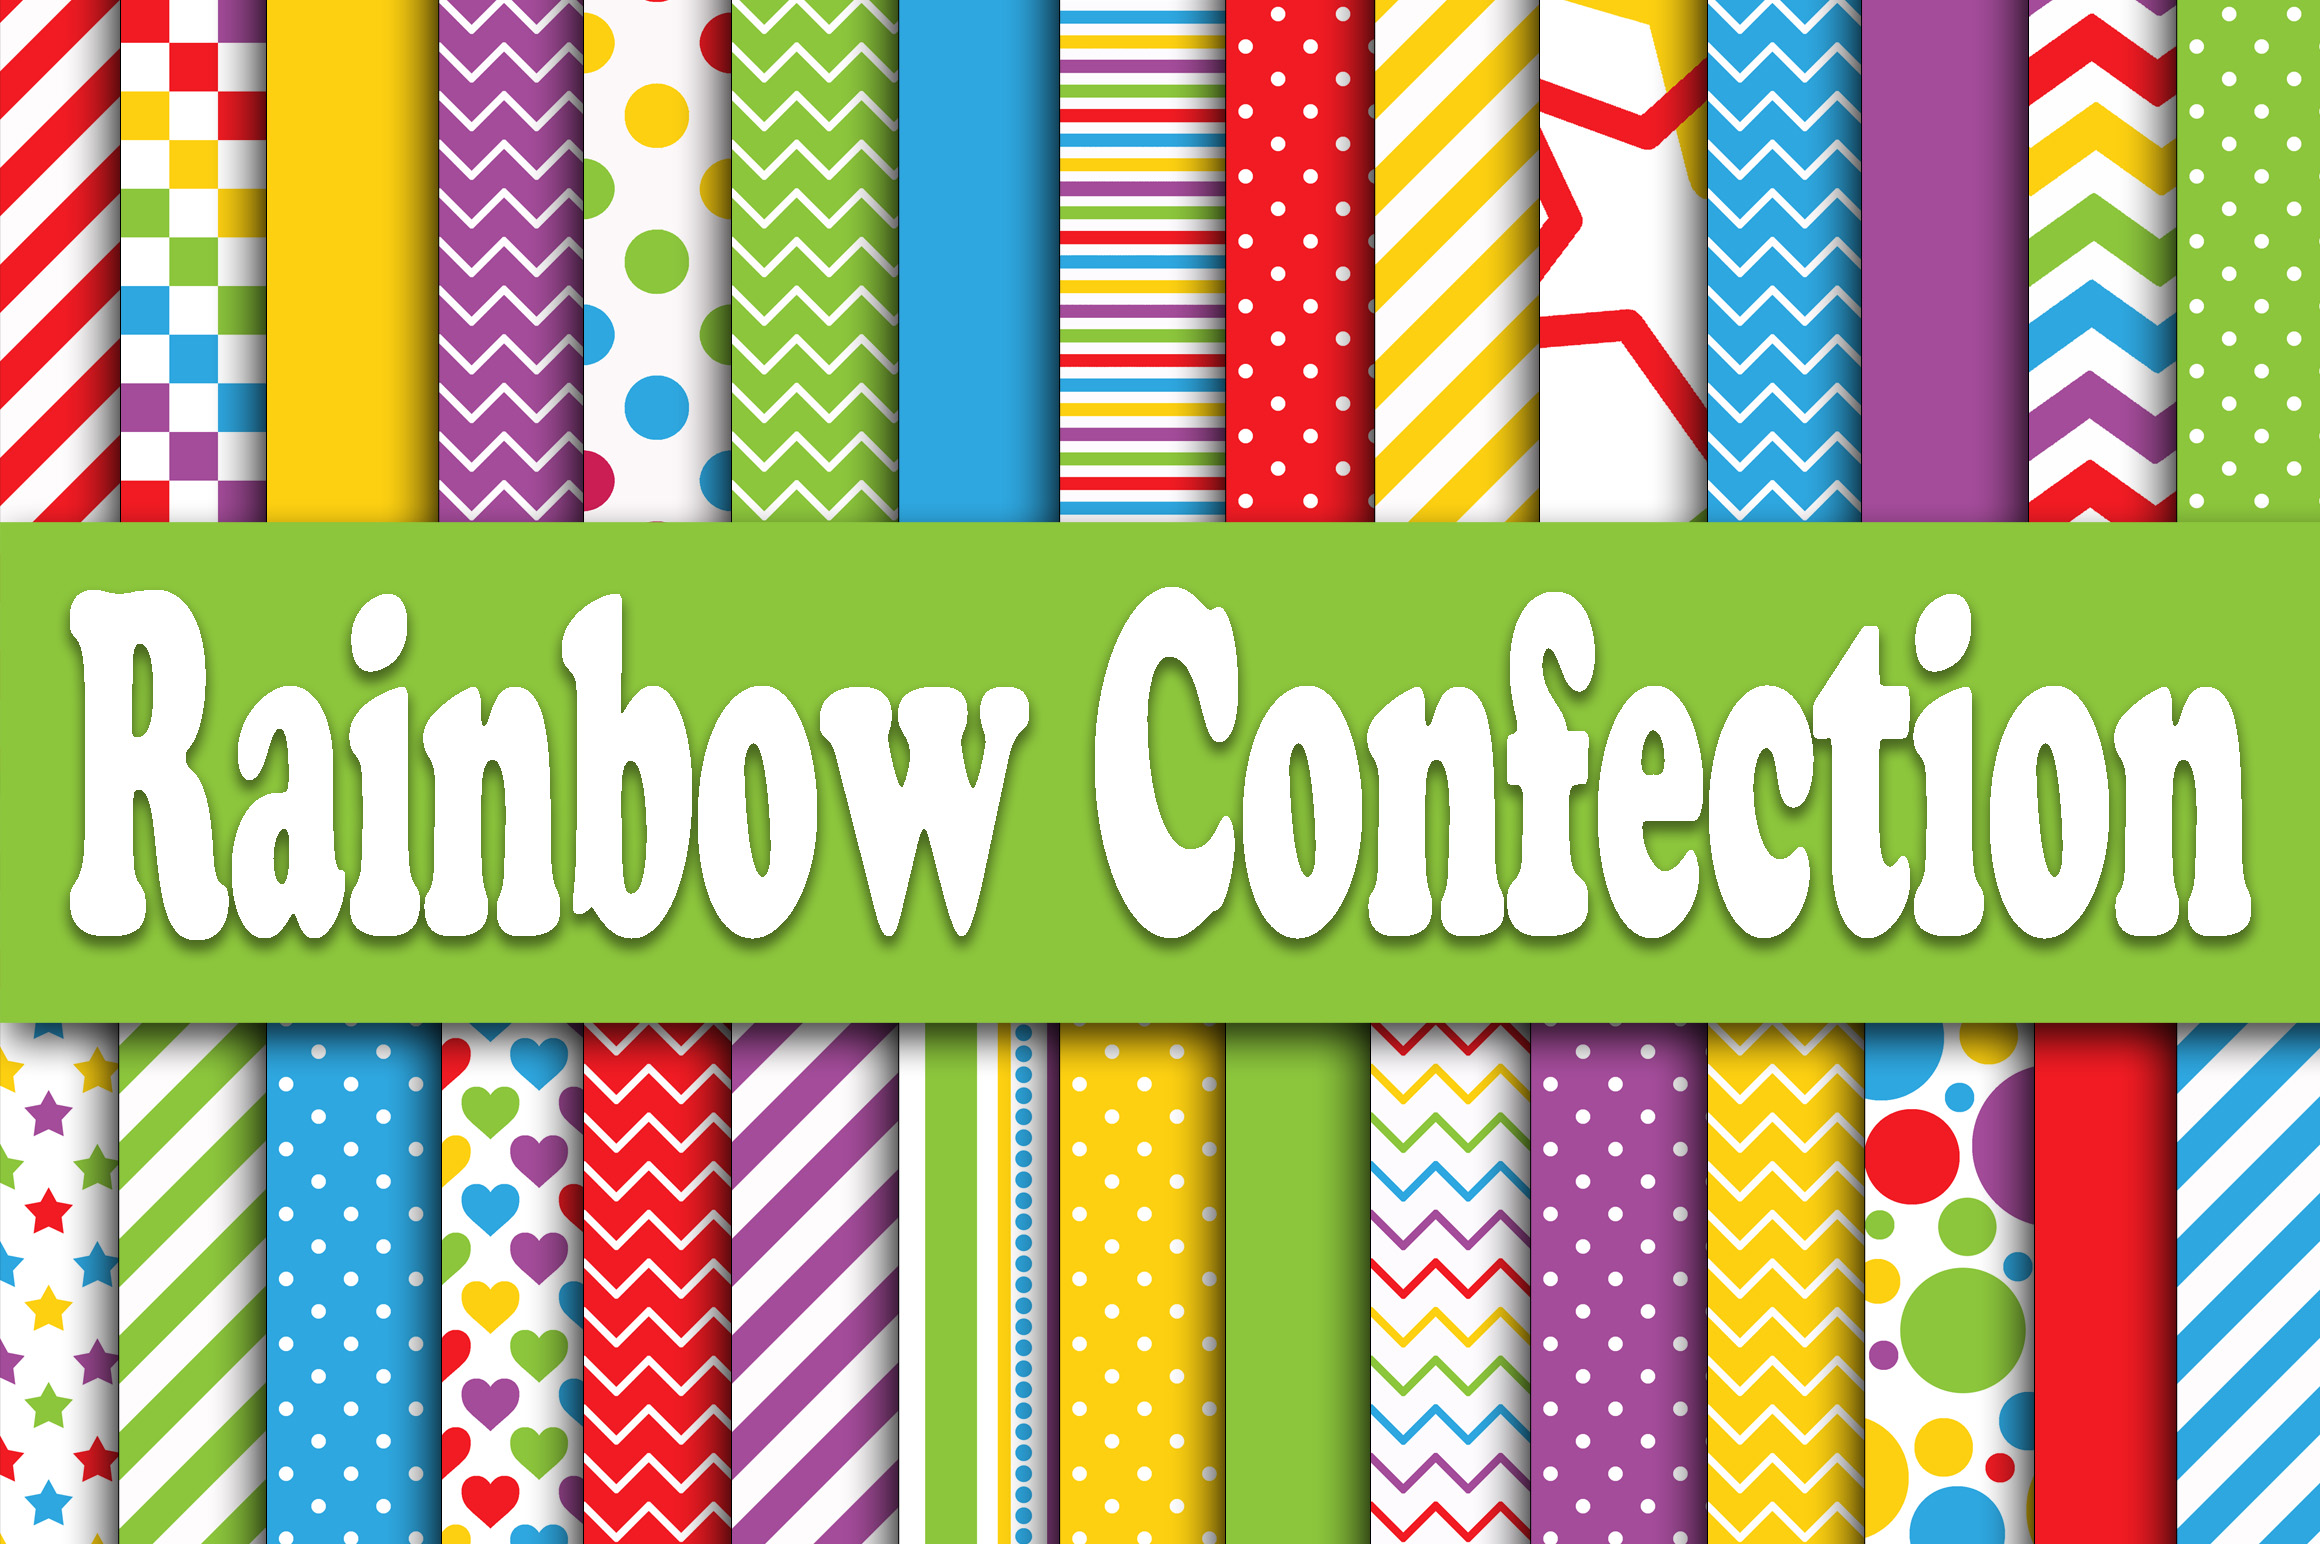 Rainbow Confection Digital Paper Graphic Backgrounds By oldmarketdesigns - Image 1